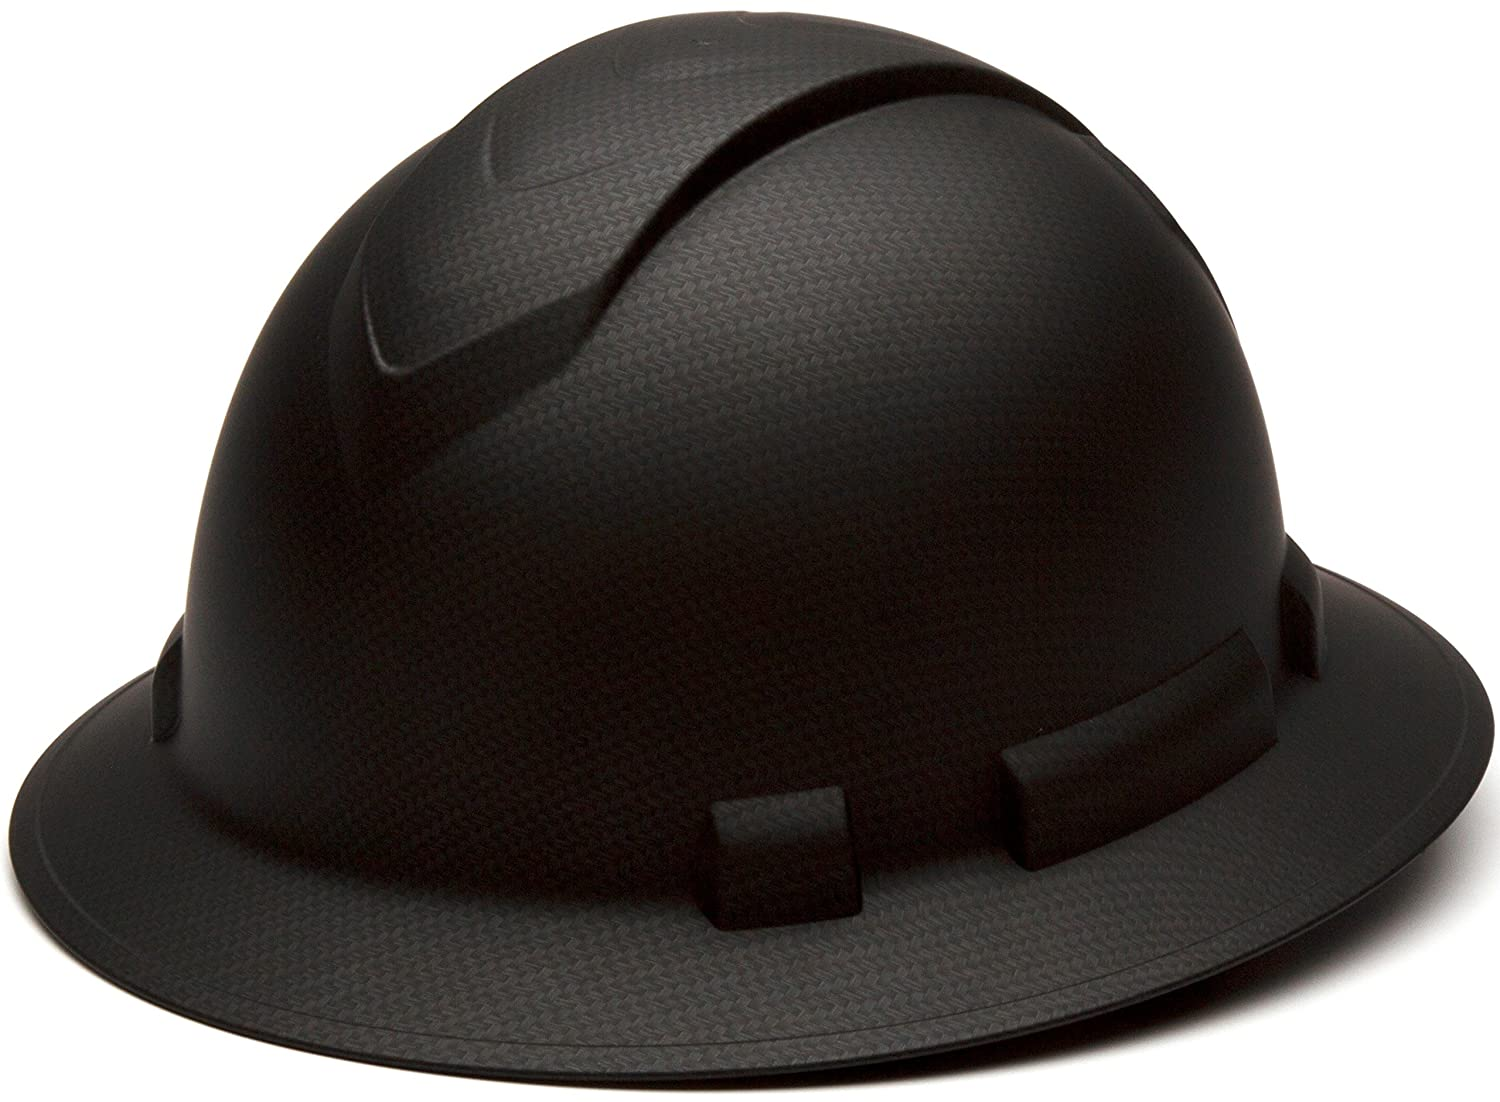 Pyramex Safety Products HP54117 Ridgeline Full Brim Hard Hat, 4 Pt. Ratchet, Black Graphite